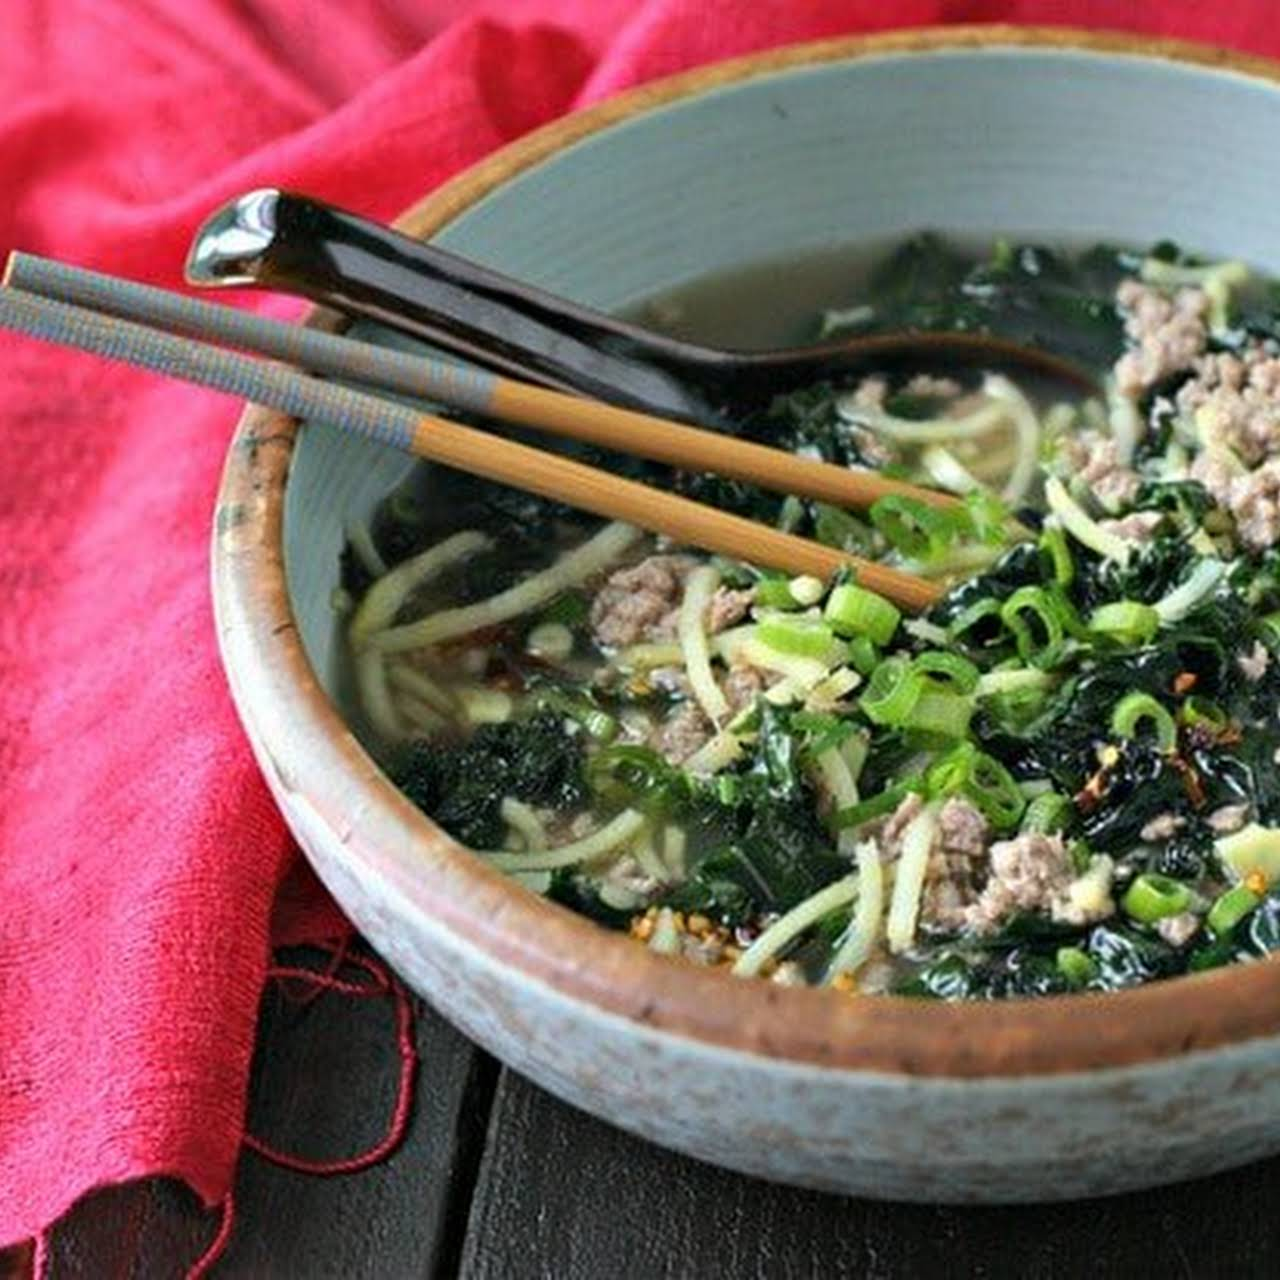 Spicy Pork Soup With Kale and Japanese Sweet Potato